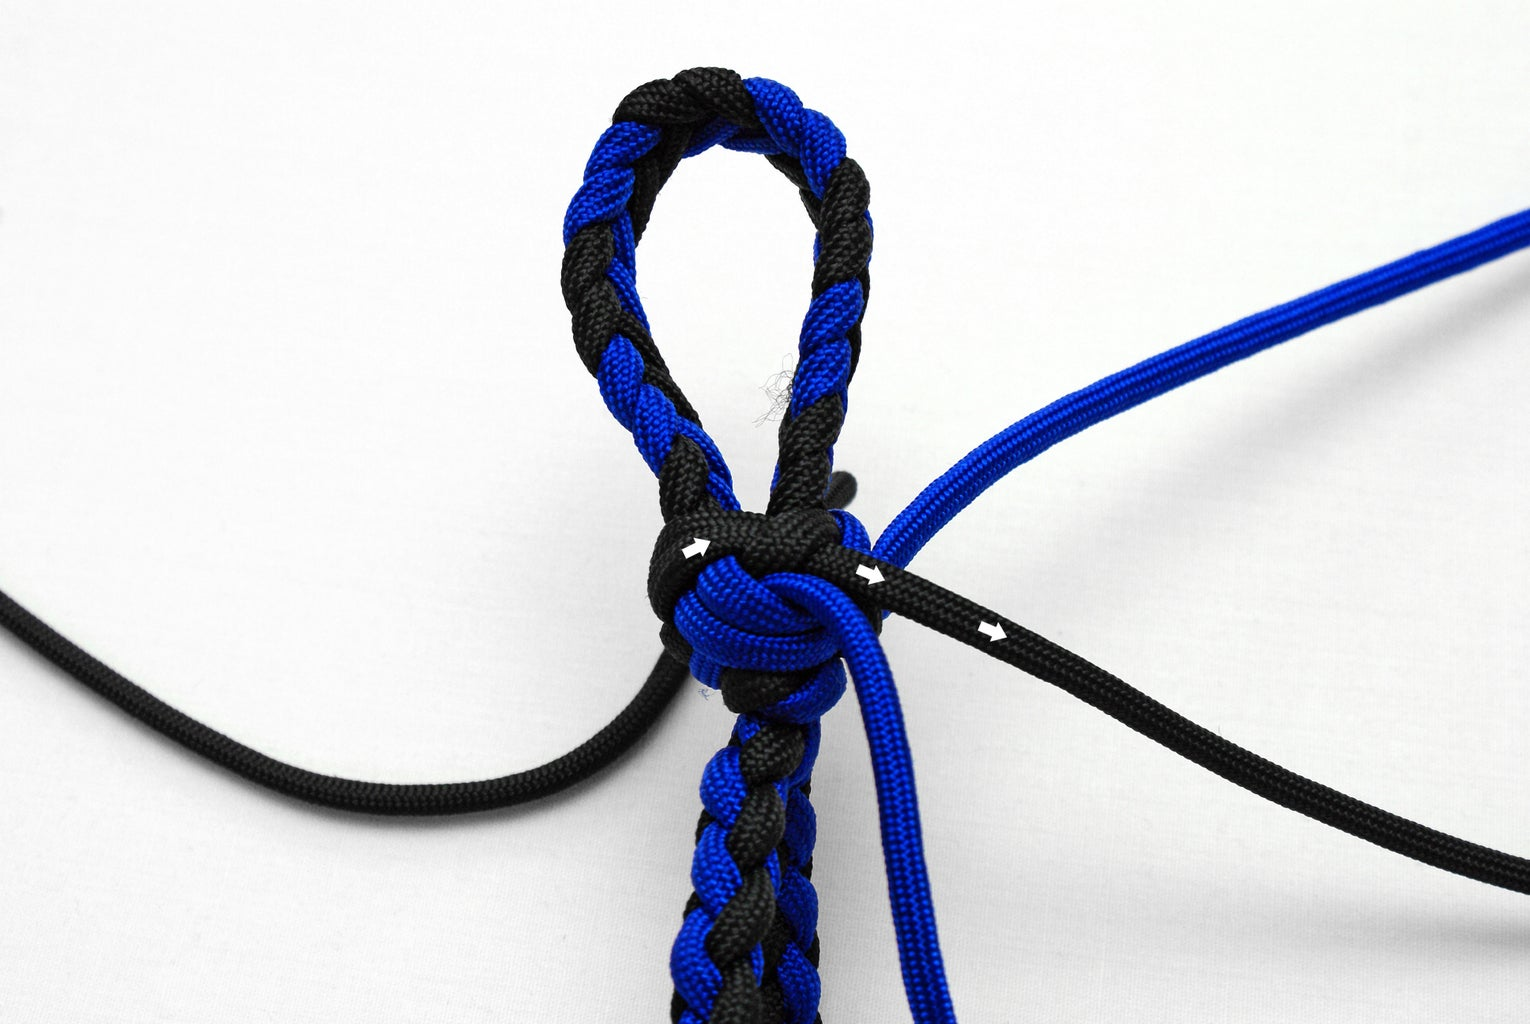 The Manrope Knot (Knotting)